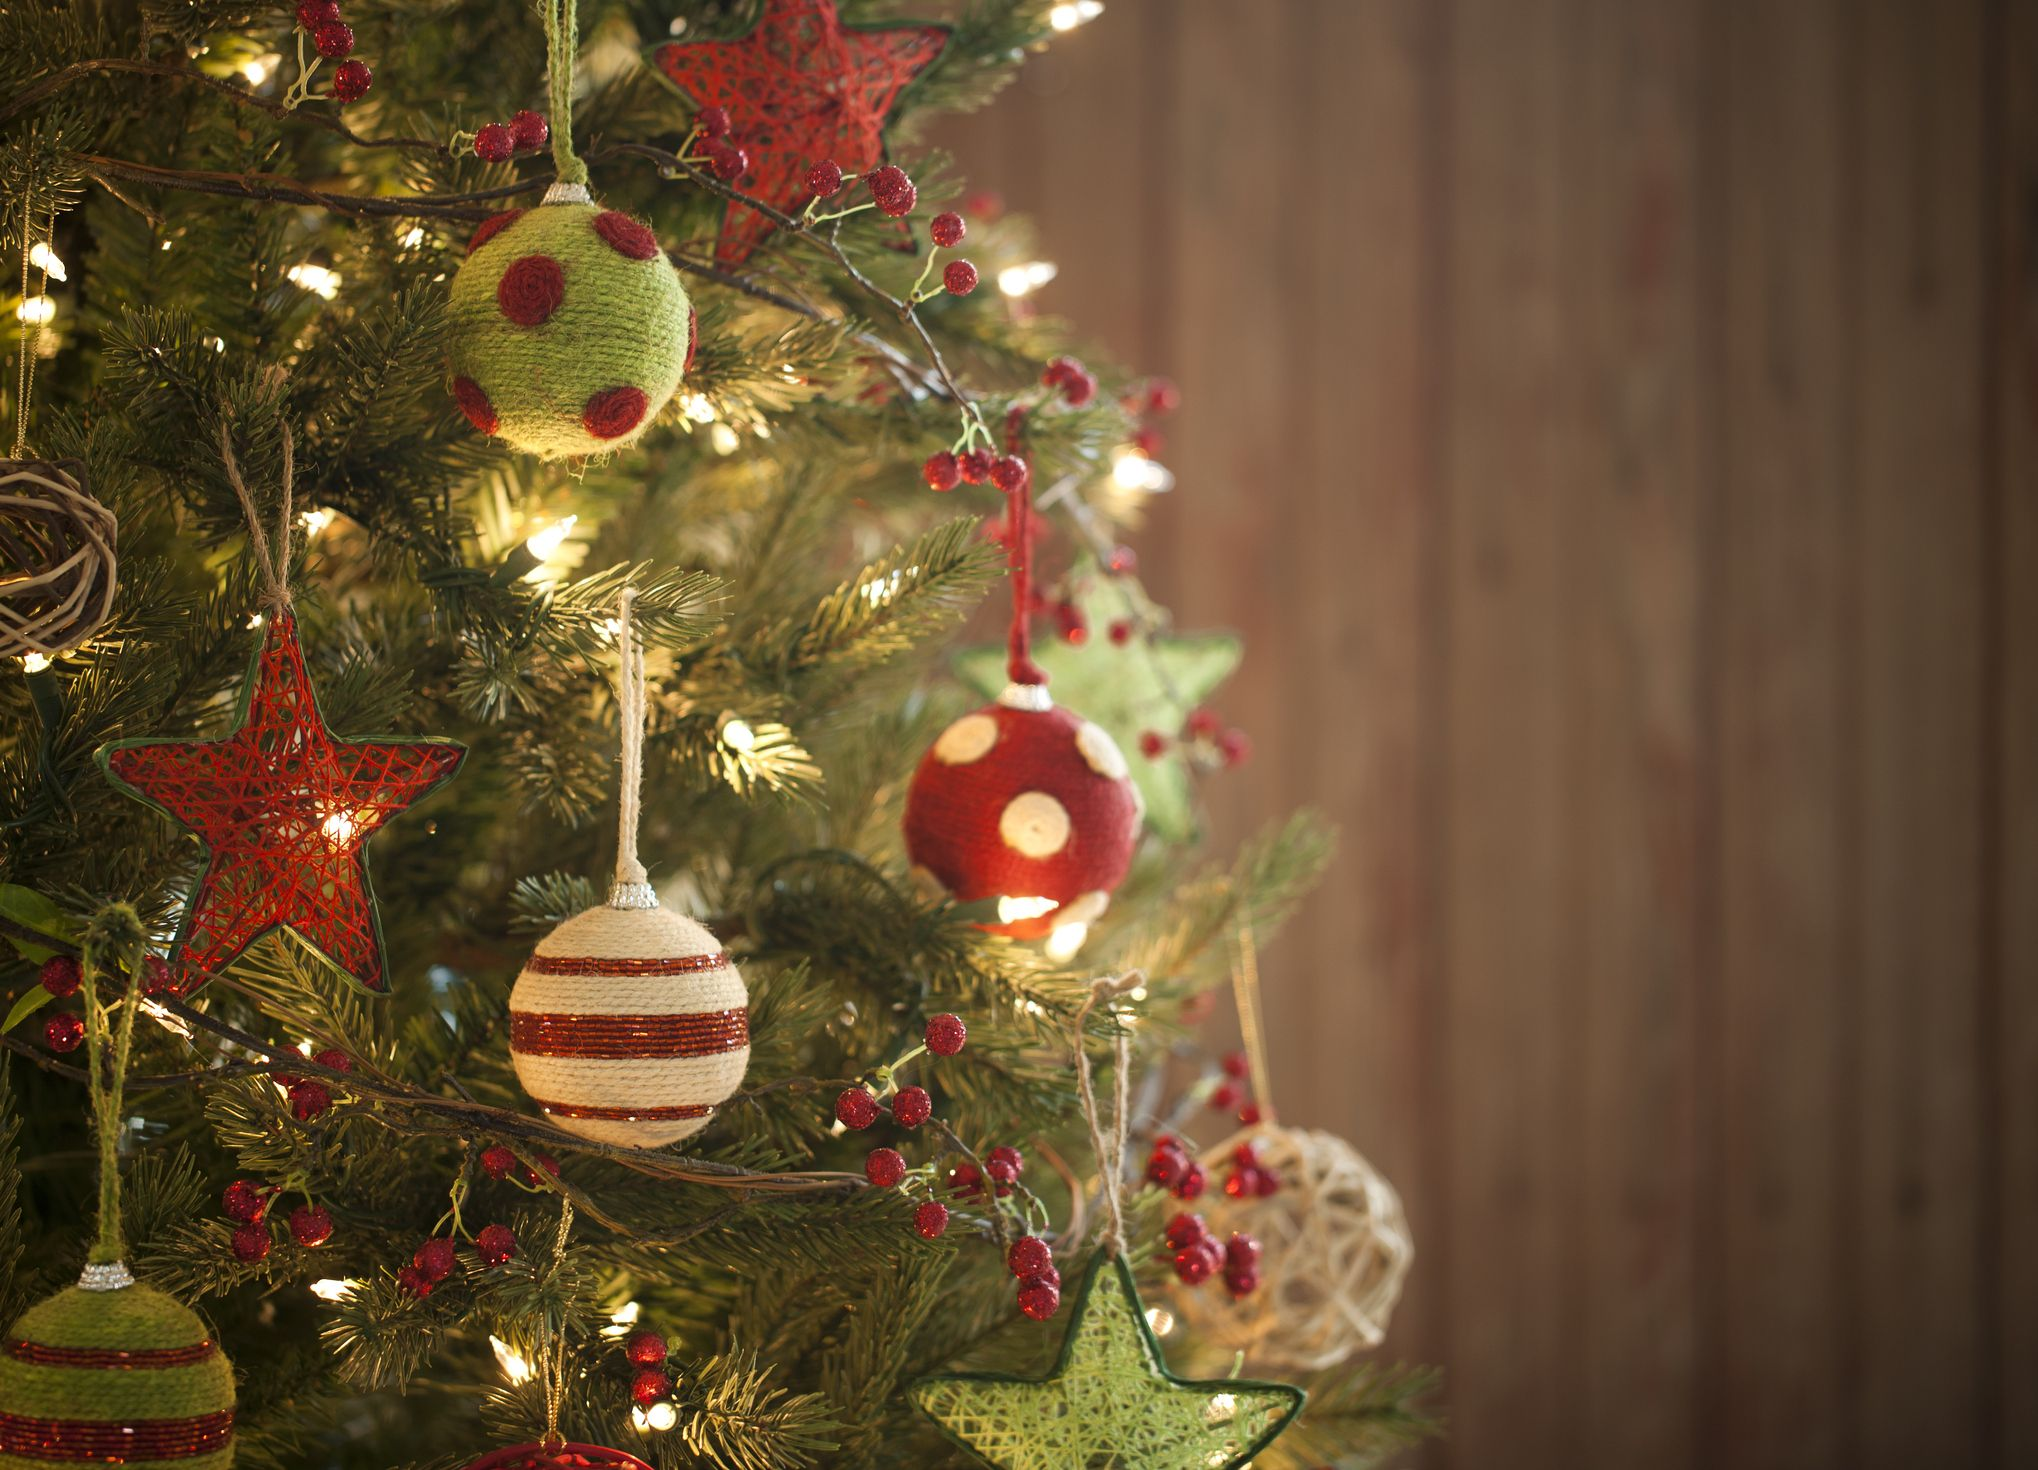 When to take down your Christmas decorations, according to tradition